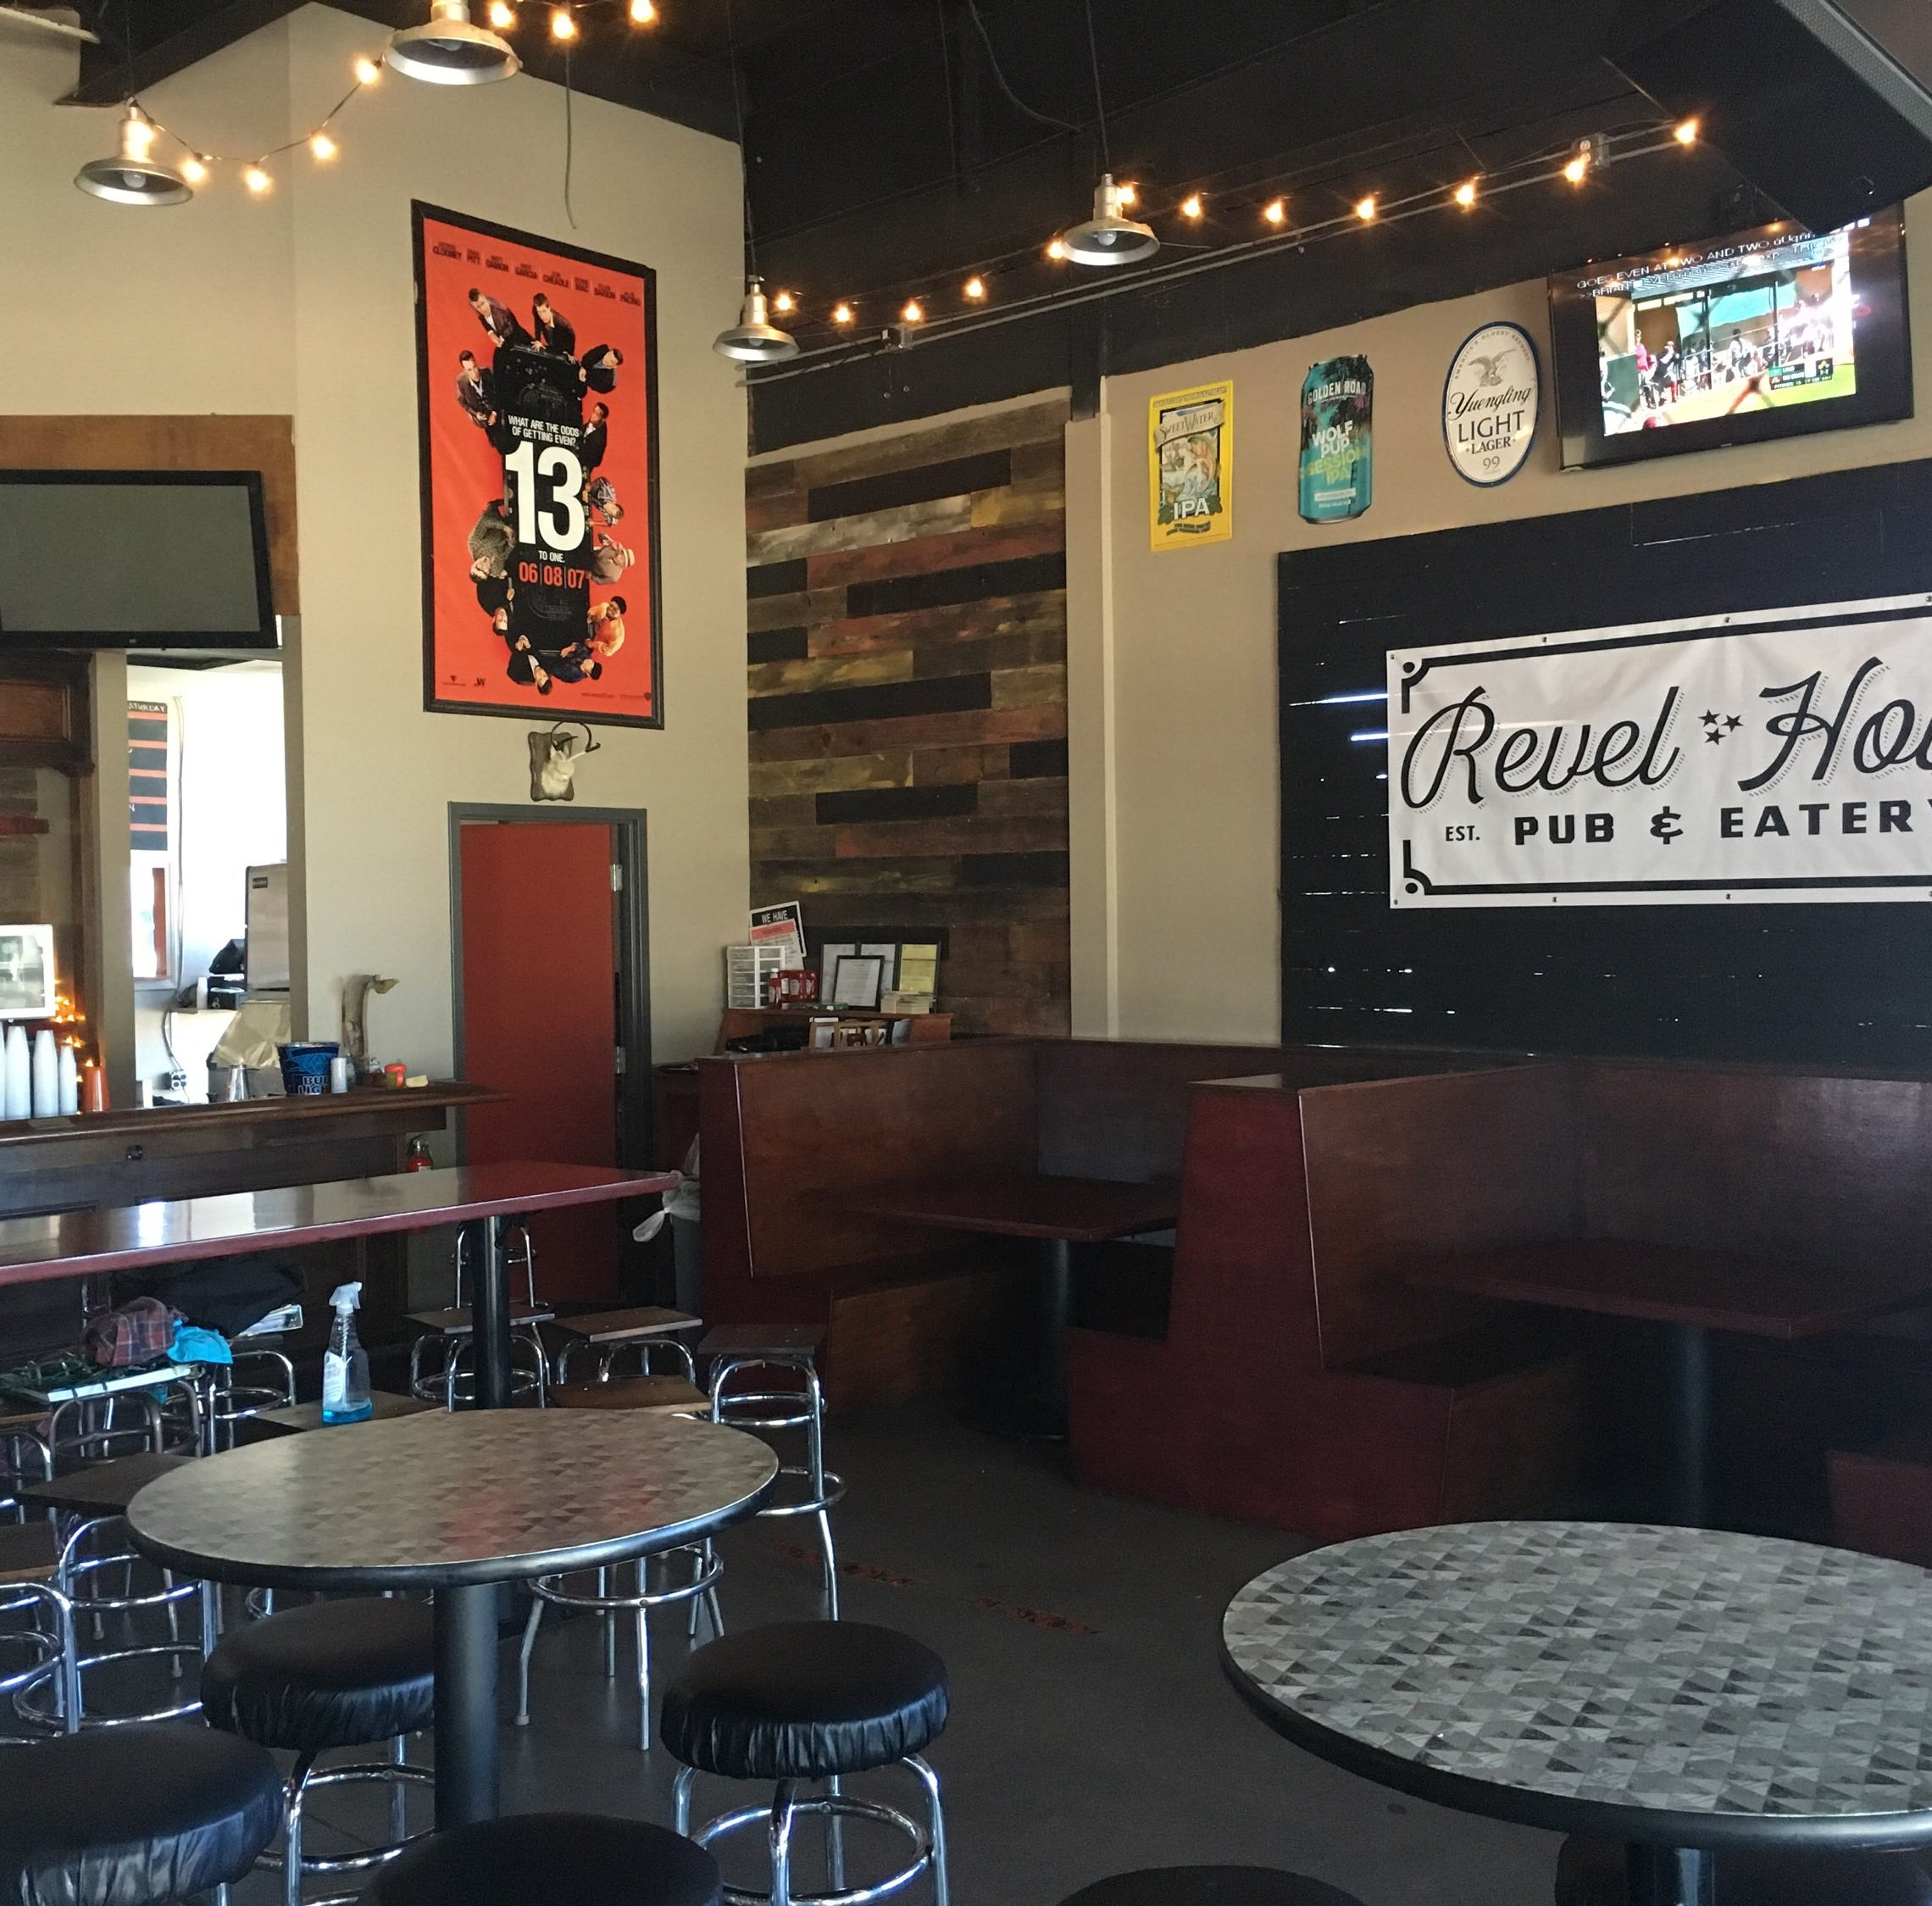 Revel House Pub & Eatery opens in downtown Clarksville